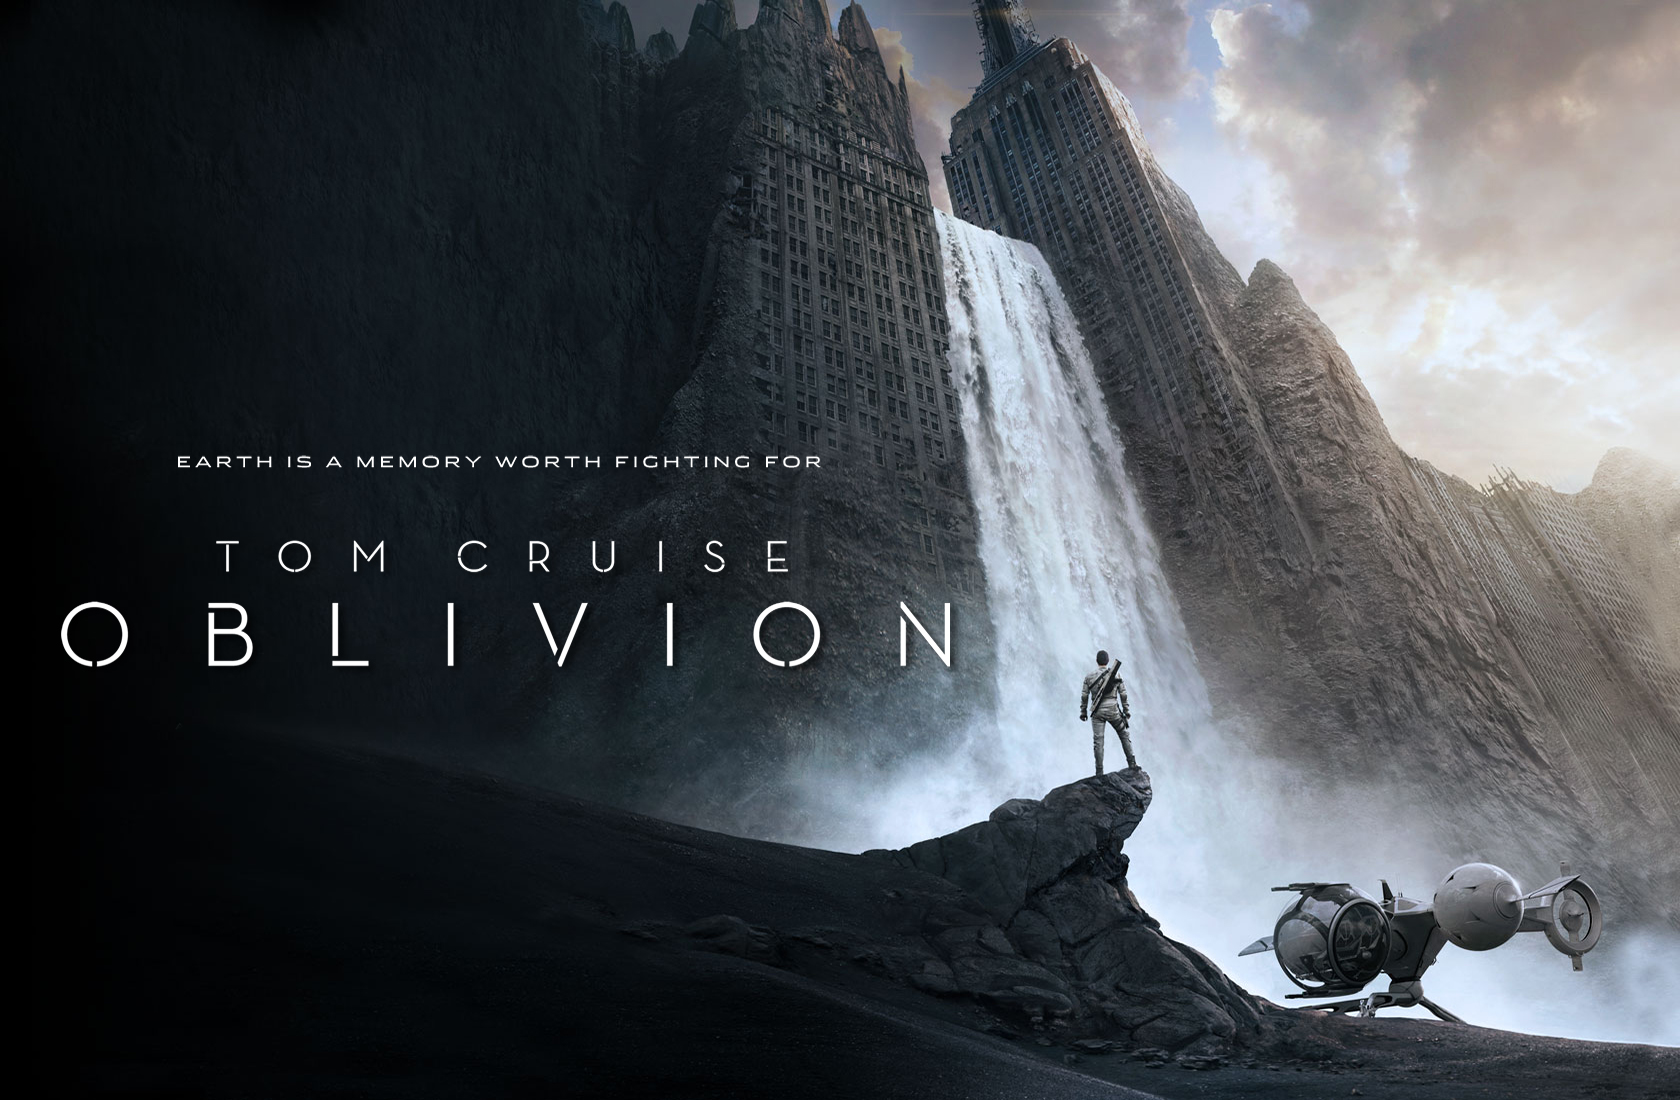 Oblivion Wallpaper and Background Image 1680x1100 ID334892 1680x1100